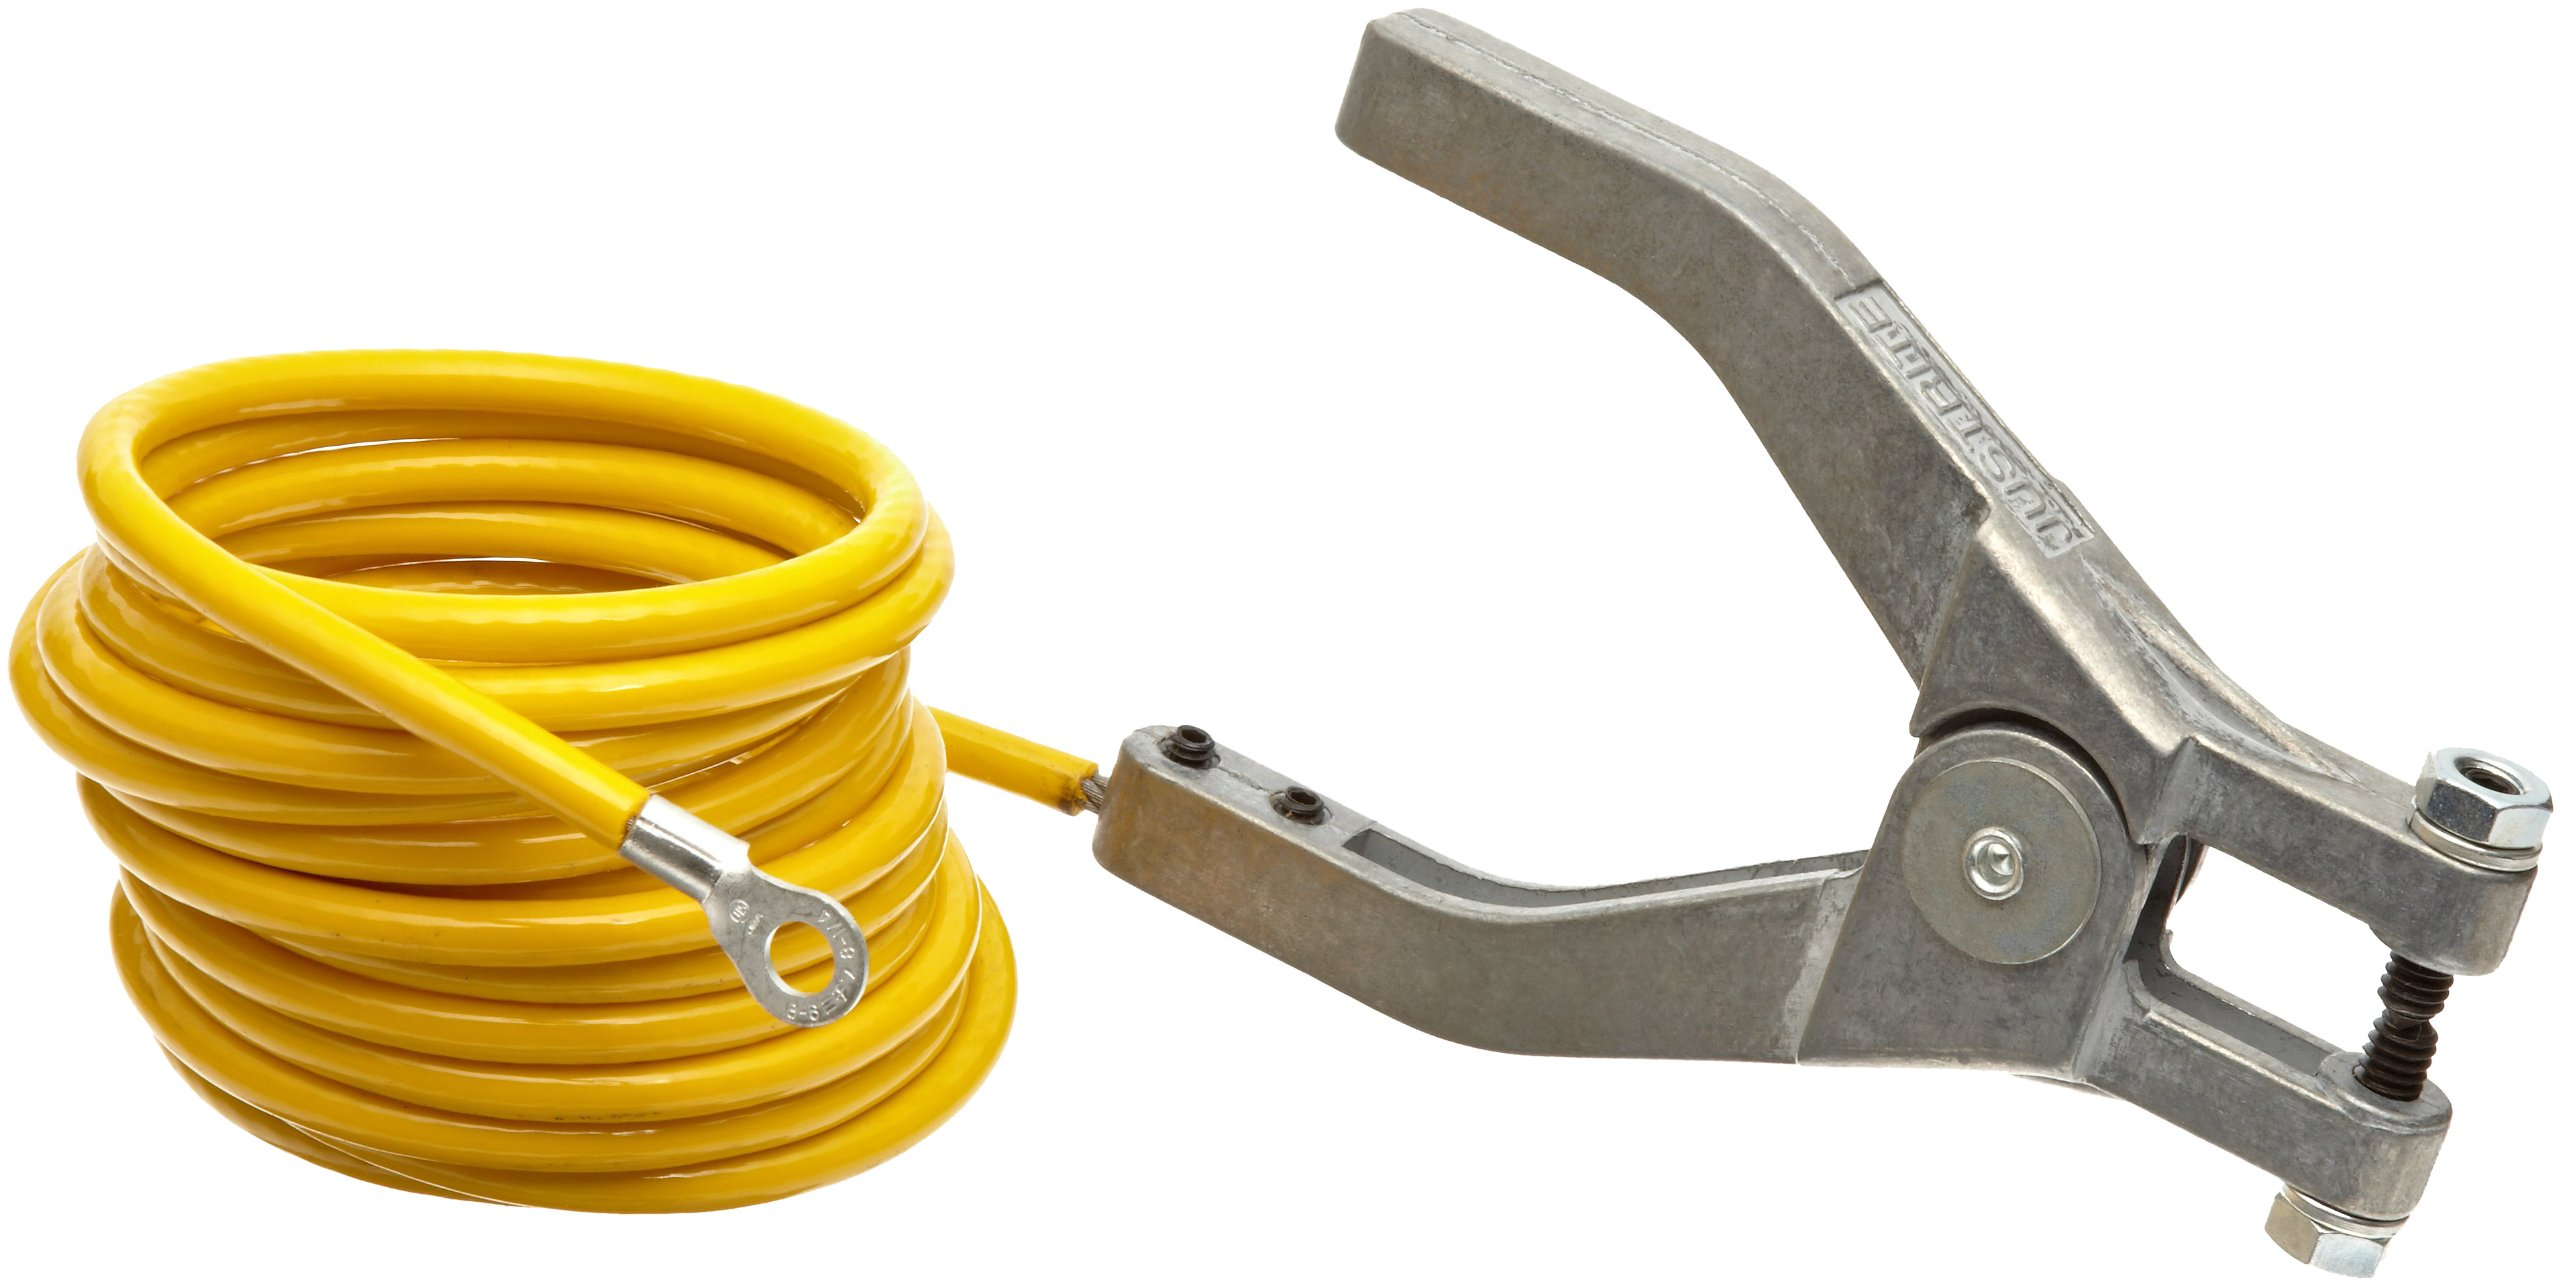 Justrite 08497 10' Long Insulated Grounding Wire With Hand Clamp And 1-4'' Terminal